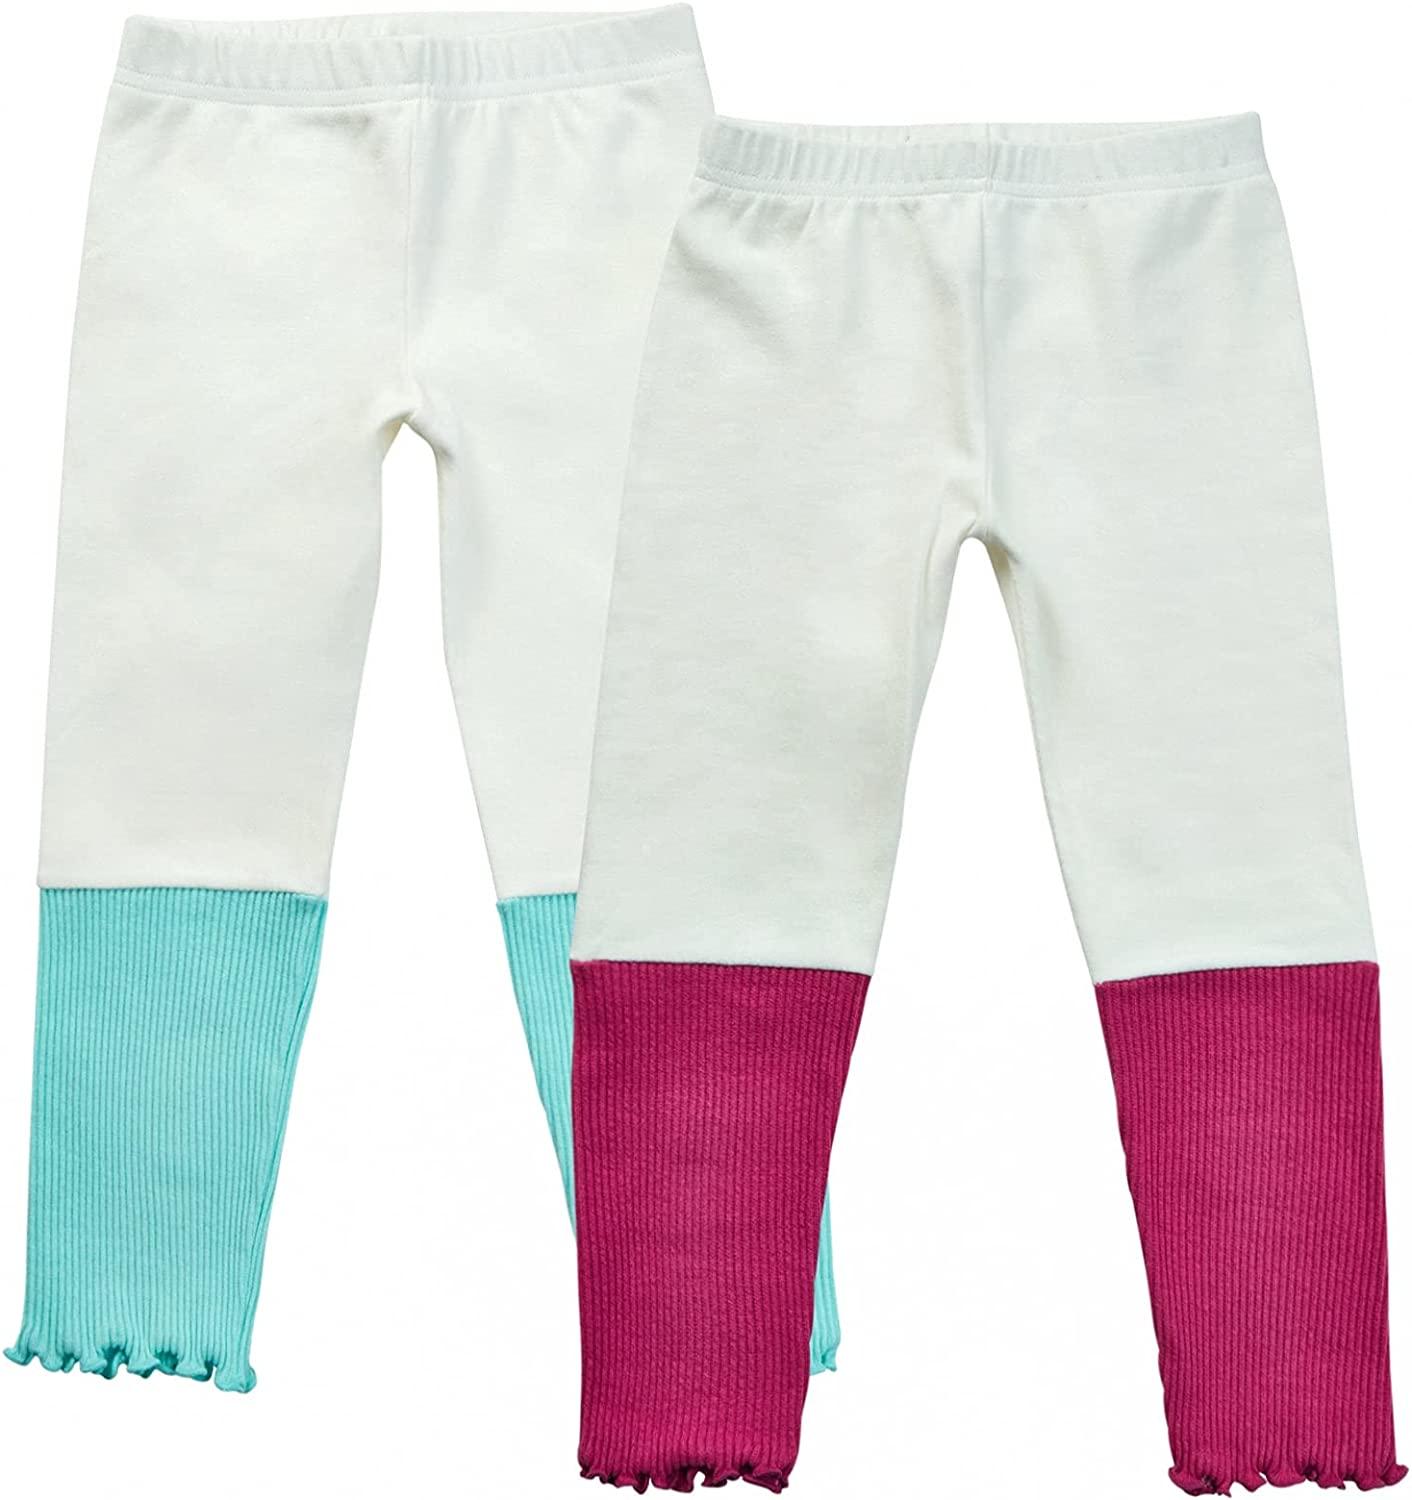 Chatter Carrot Little Girls' Mix and Match Casual Leggings 2 Pack Toddler & Kids